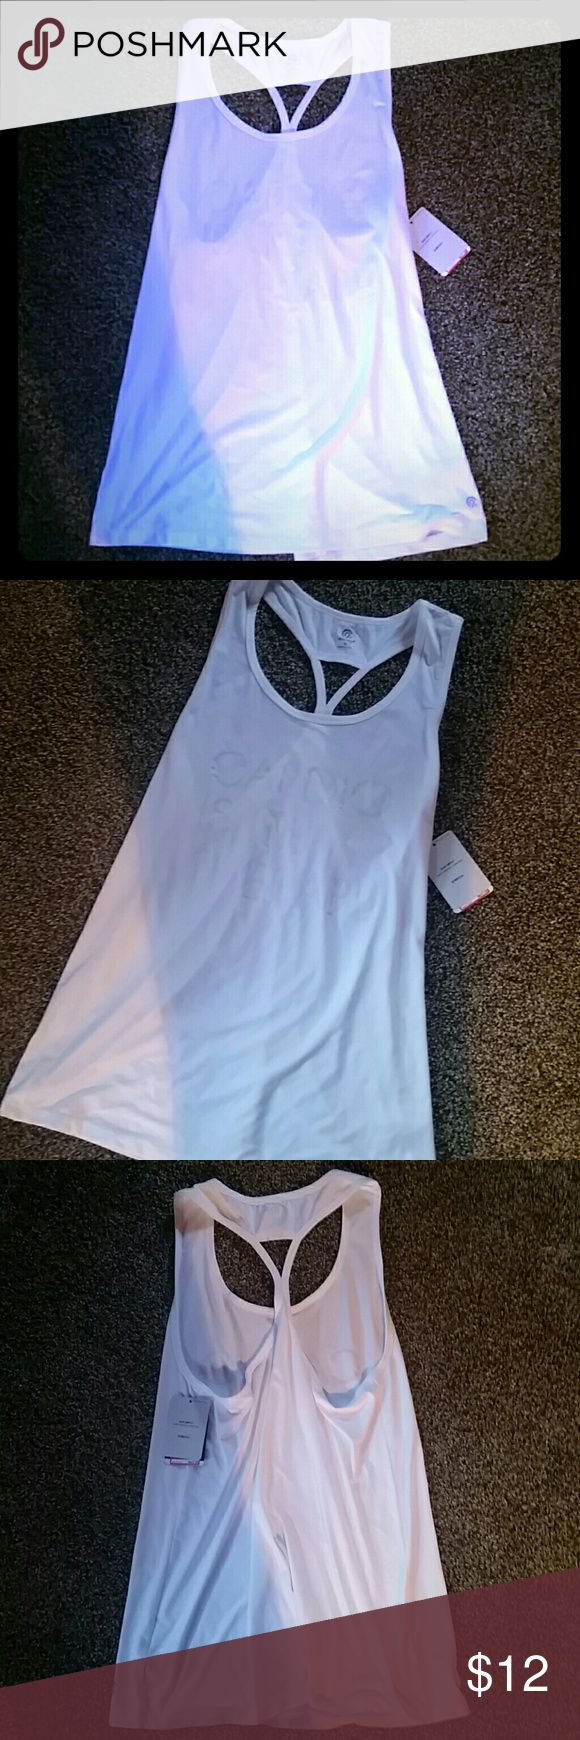 C9 Champion Duo Dry Workout Tank Brand new w/ tags Champion workout tank!!  Contains Duo Dry technology to help keep you cool & wick away moisture during your workout sessions.  91% Polyester  9% Spandex Champion Tops